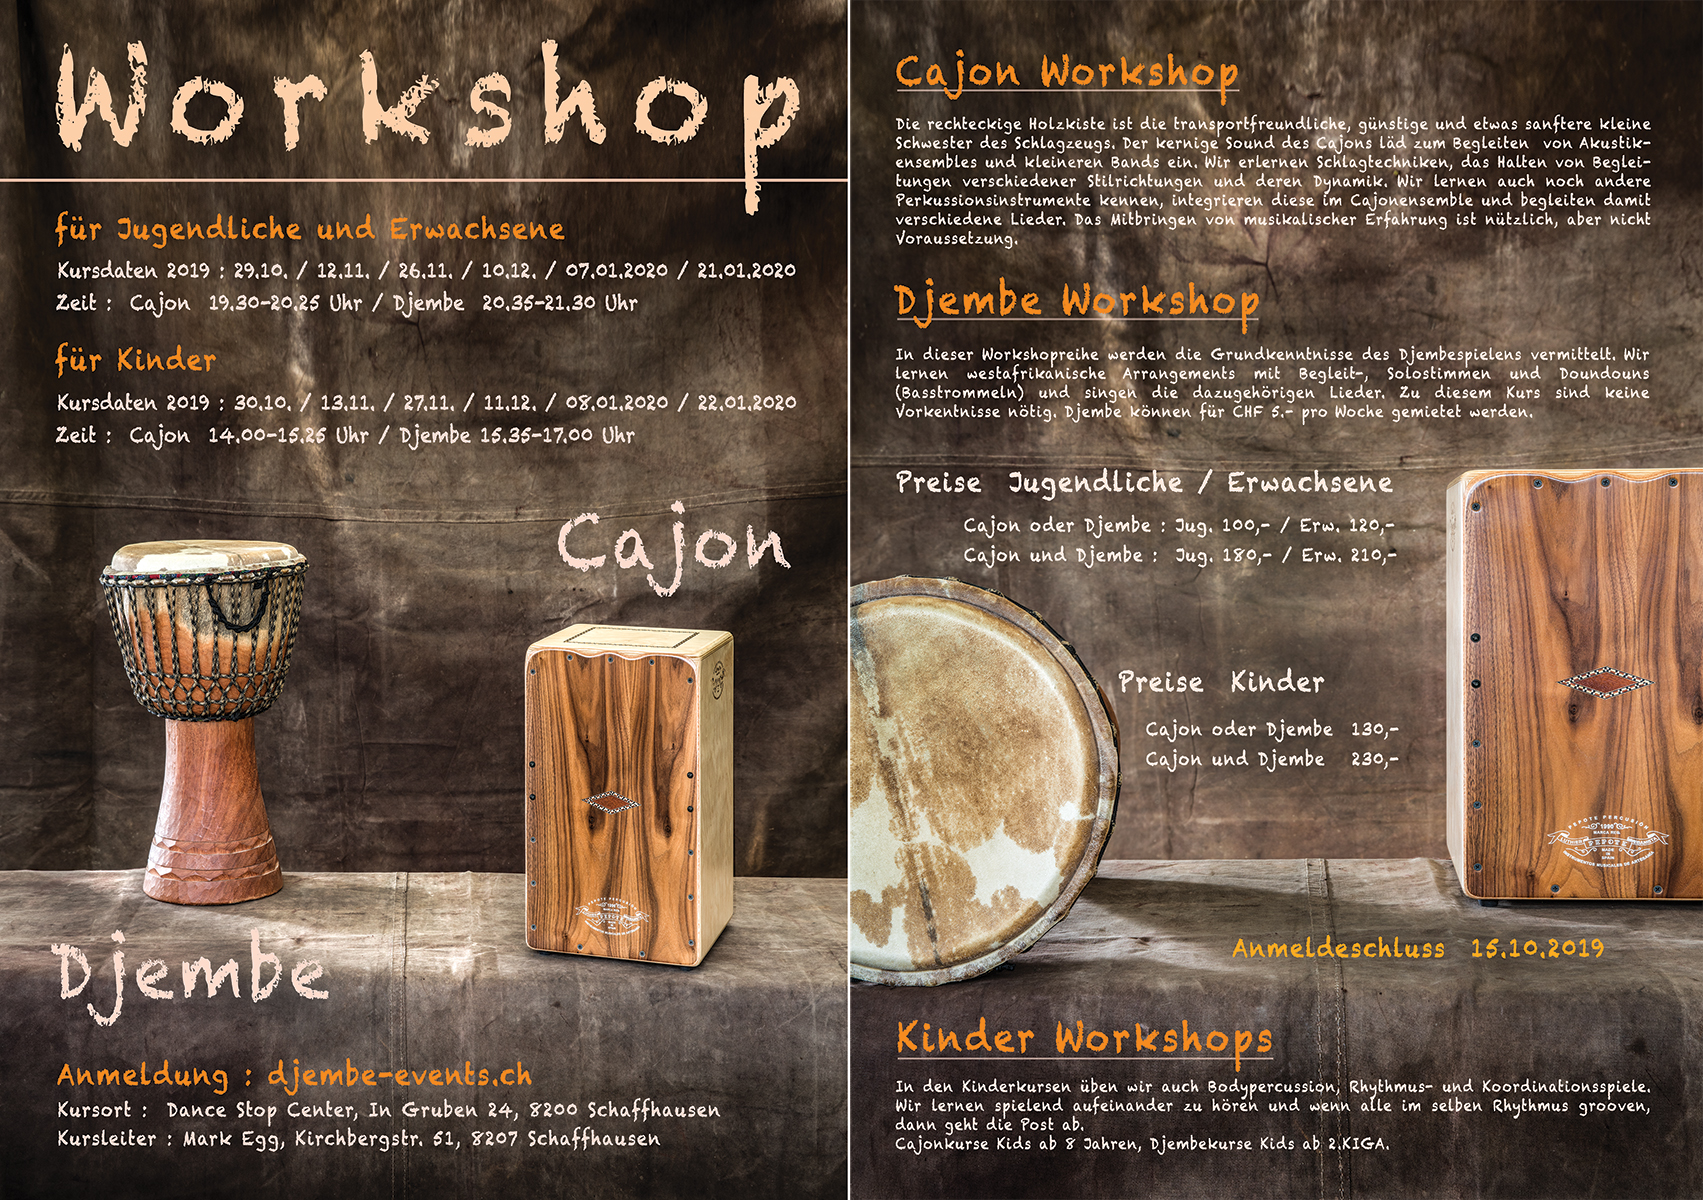 Djembe-Cajon Workshops 2019 Mark Egg